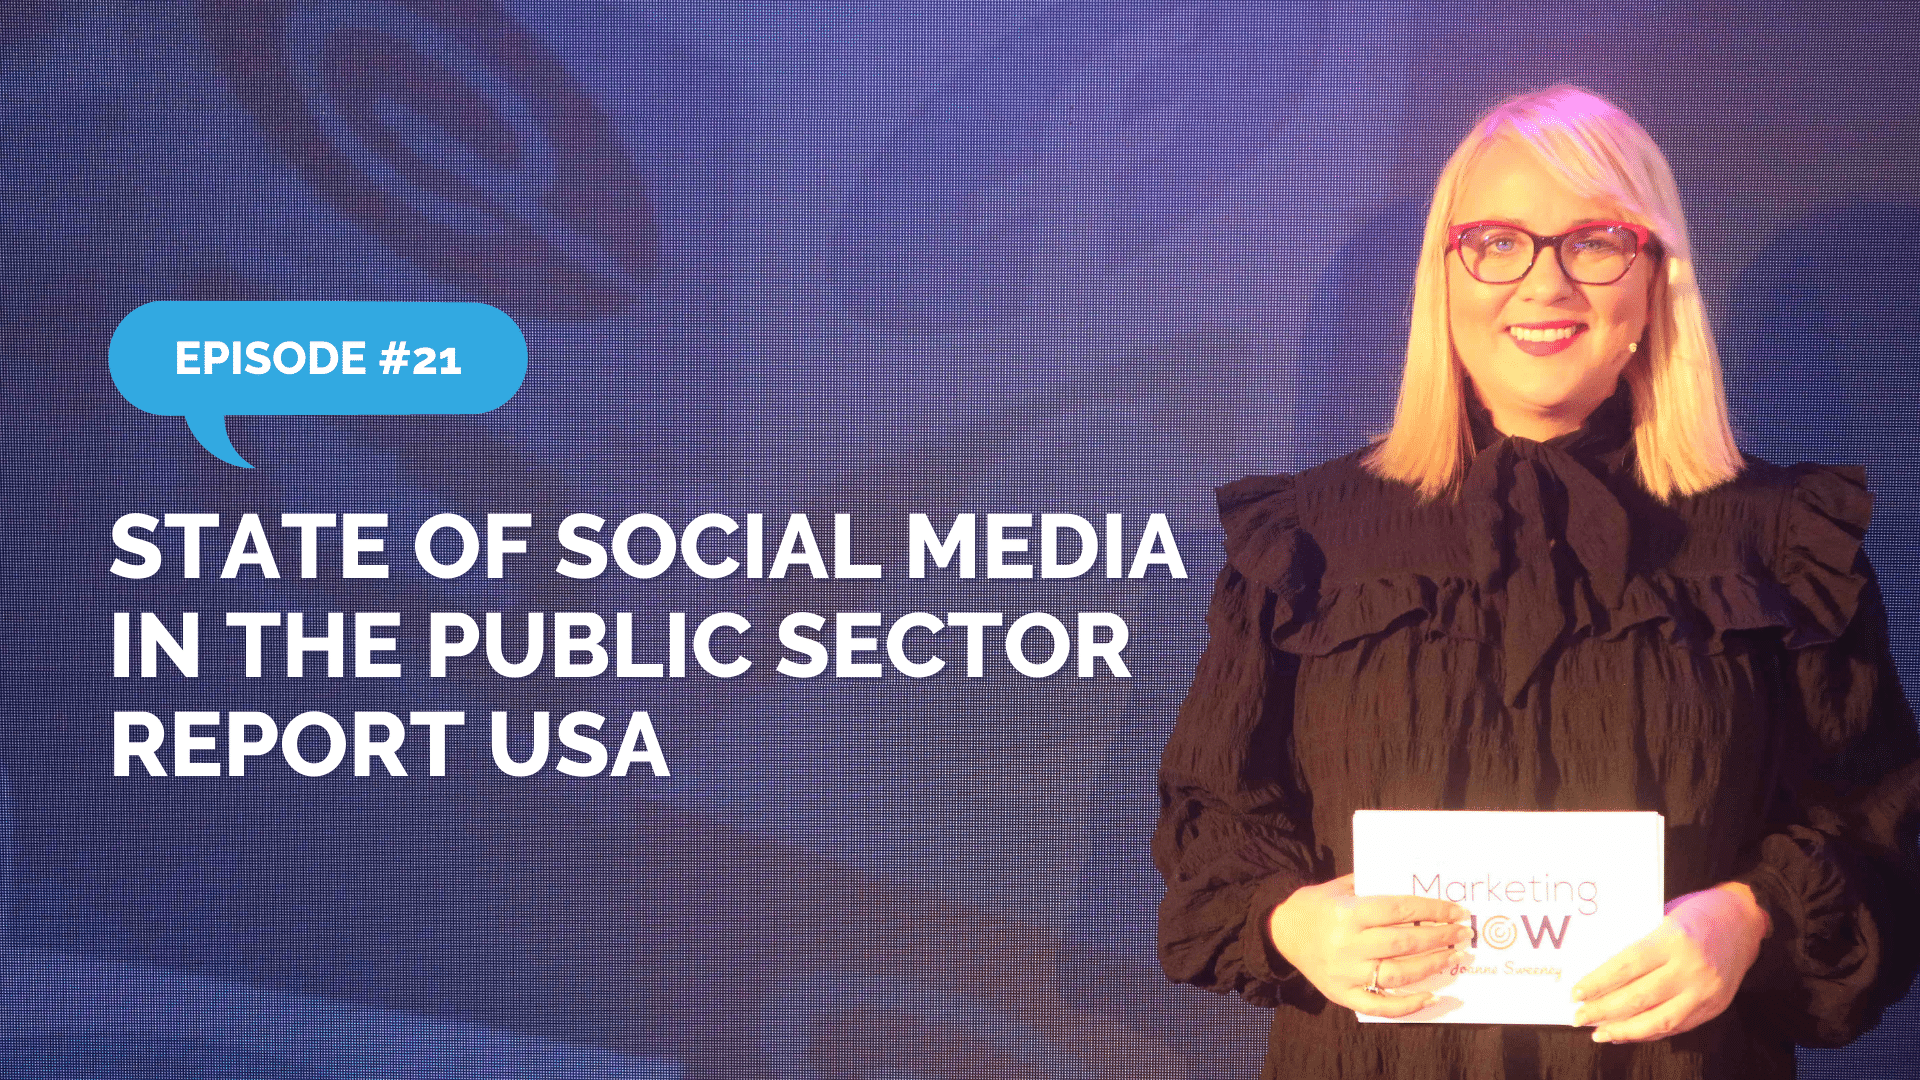 Episode 21 - State of Social Media in the Public Sector Report USA